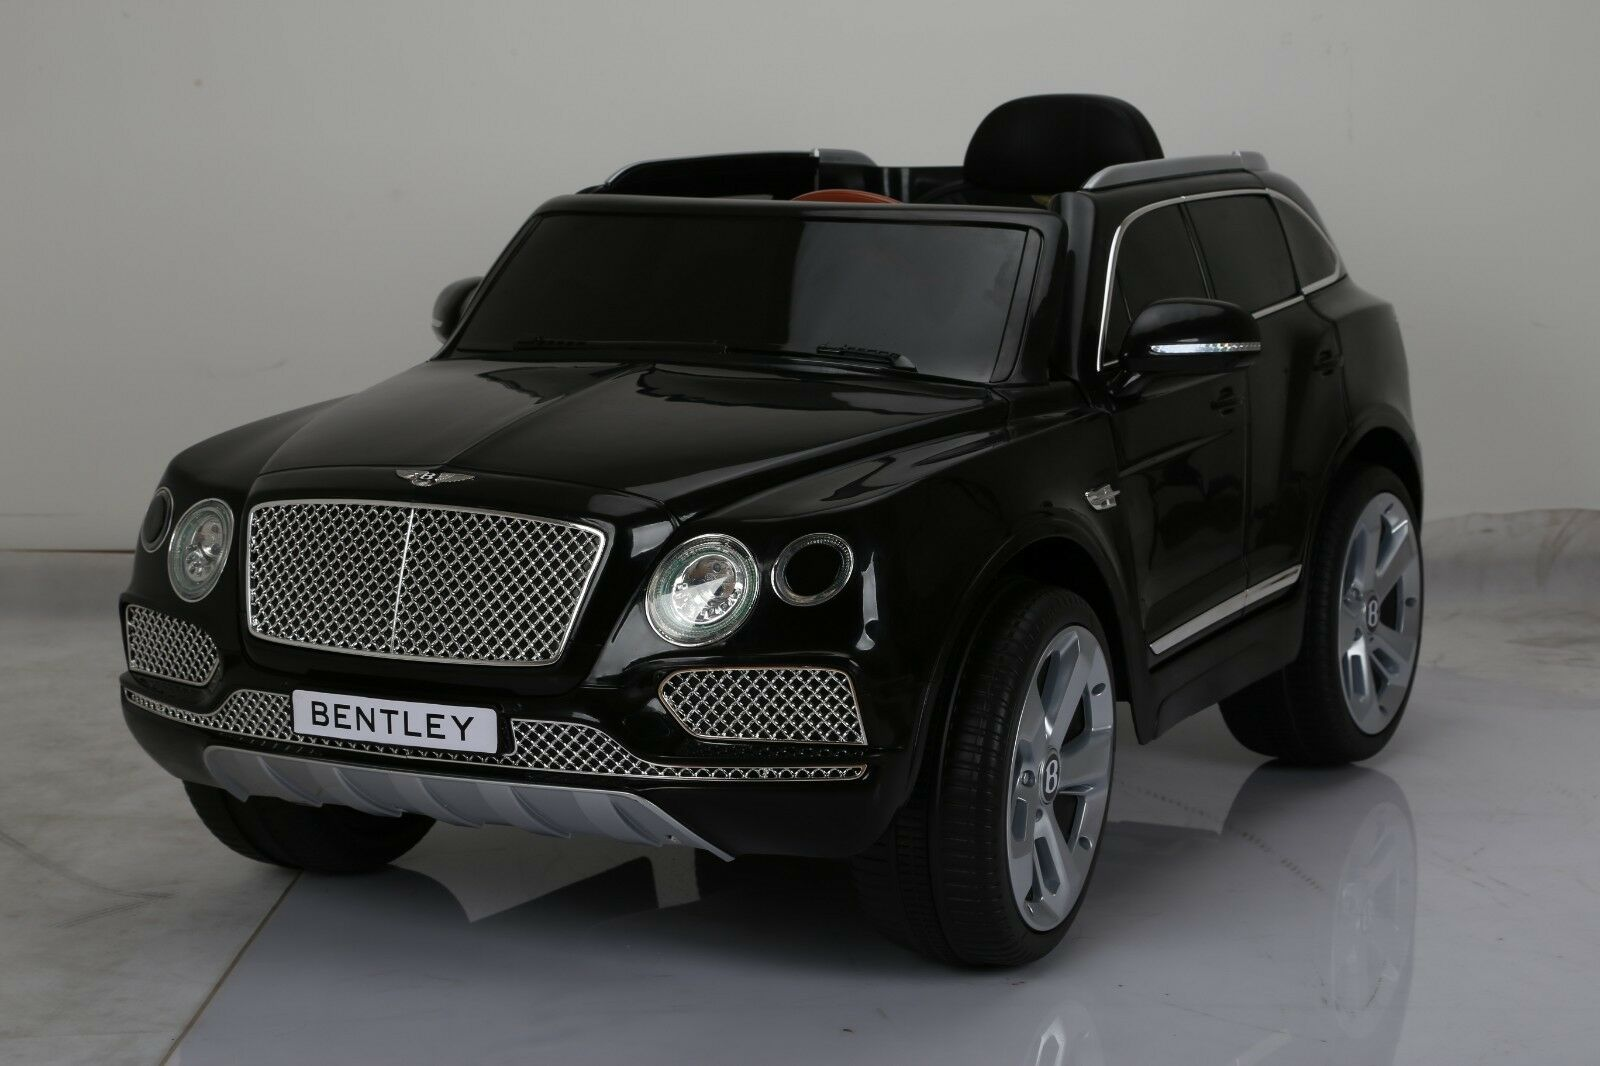 LICENSED BENTLEY STYLE RIDE ON CAR, WITH REMOTE CONTROL. 12V BATTERY, EVA TIRES